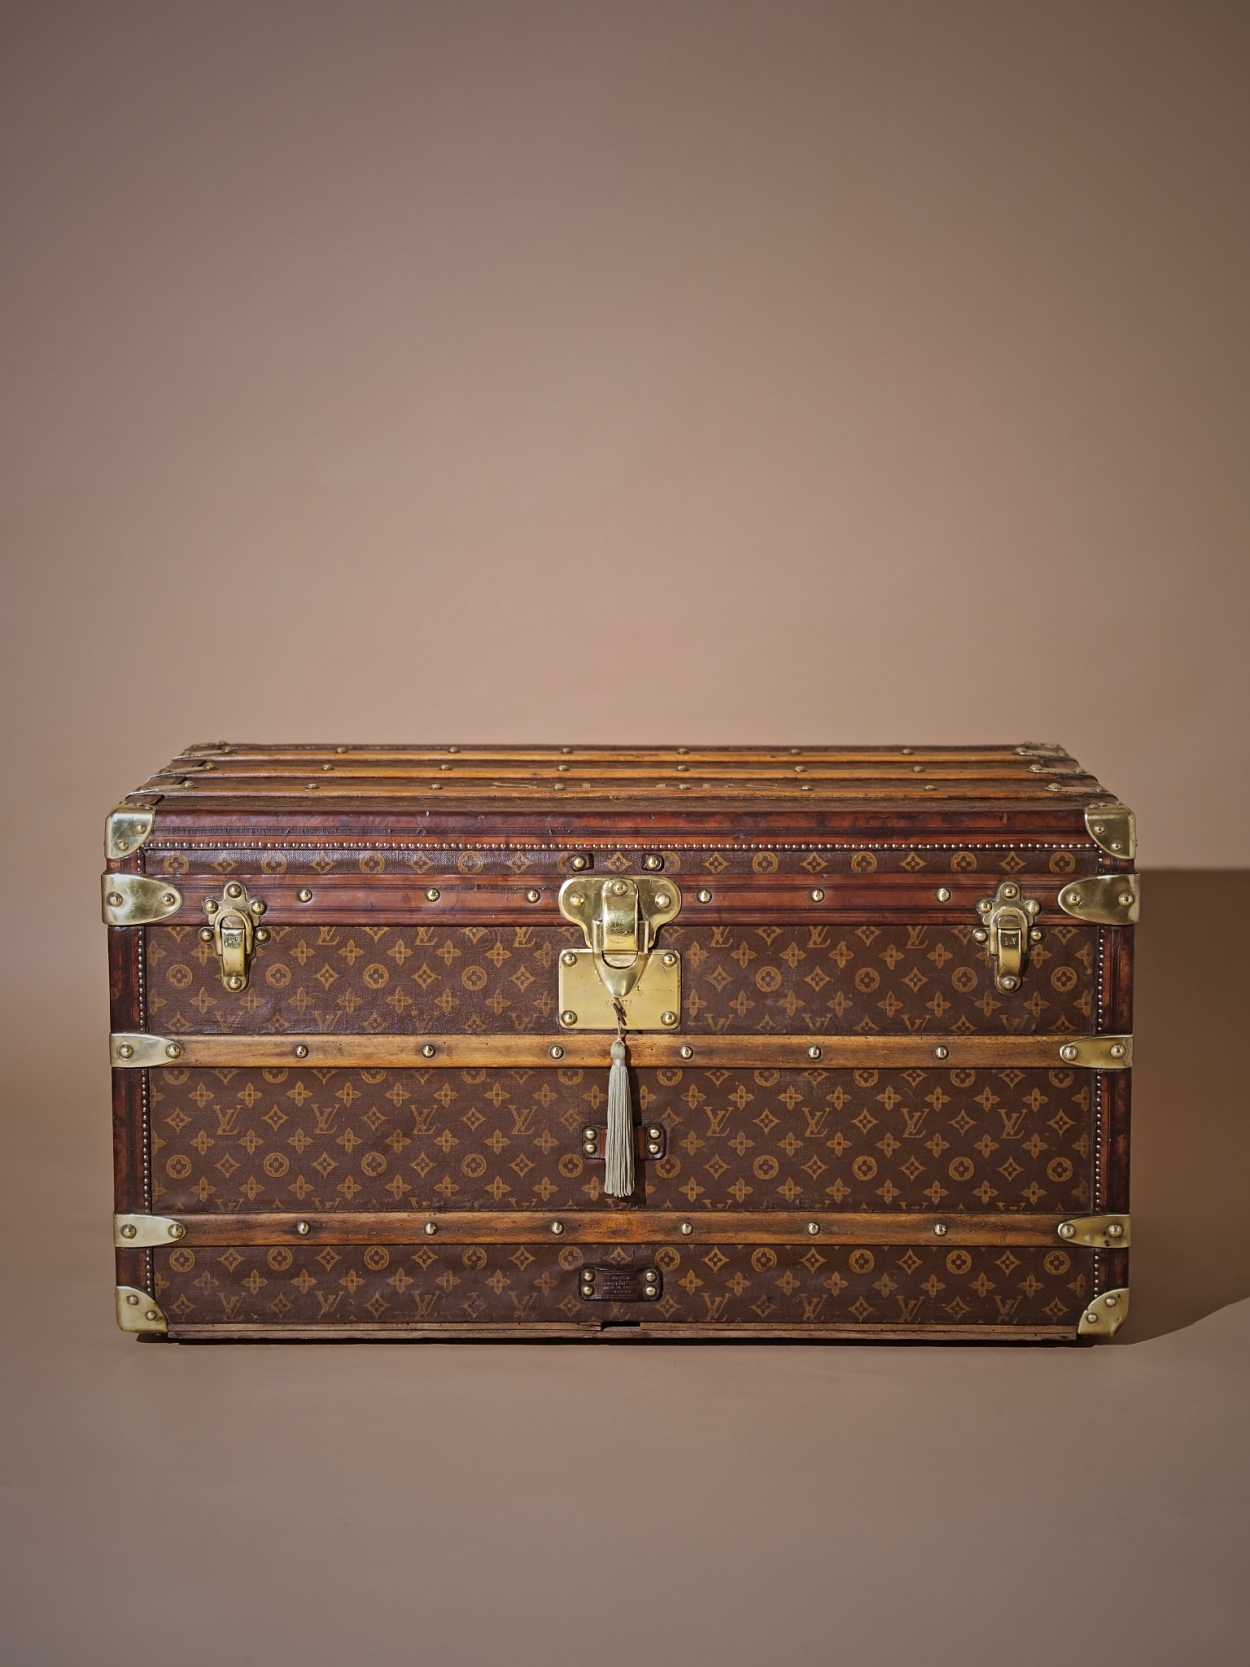 the-well-traveled-trunk-louis-vuitton-thumbnail-product-5725-1